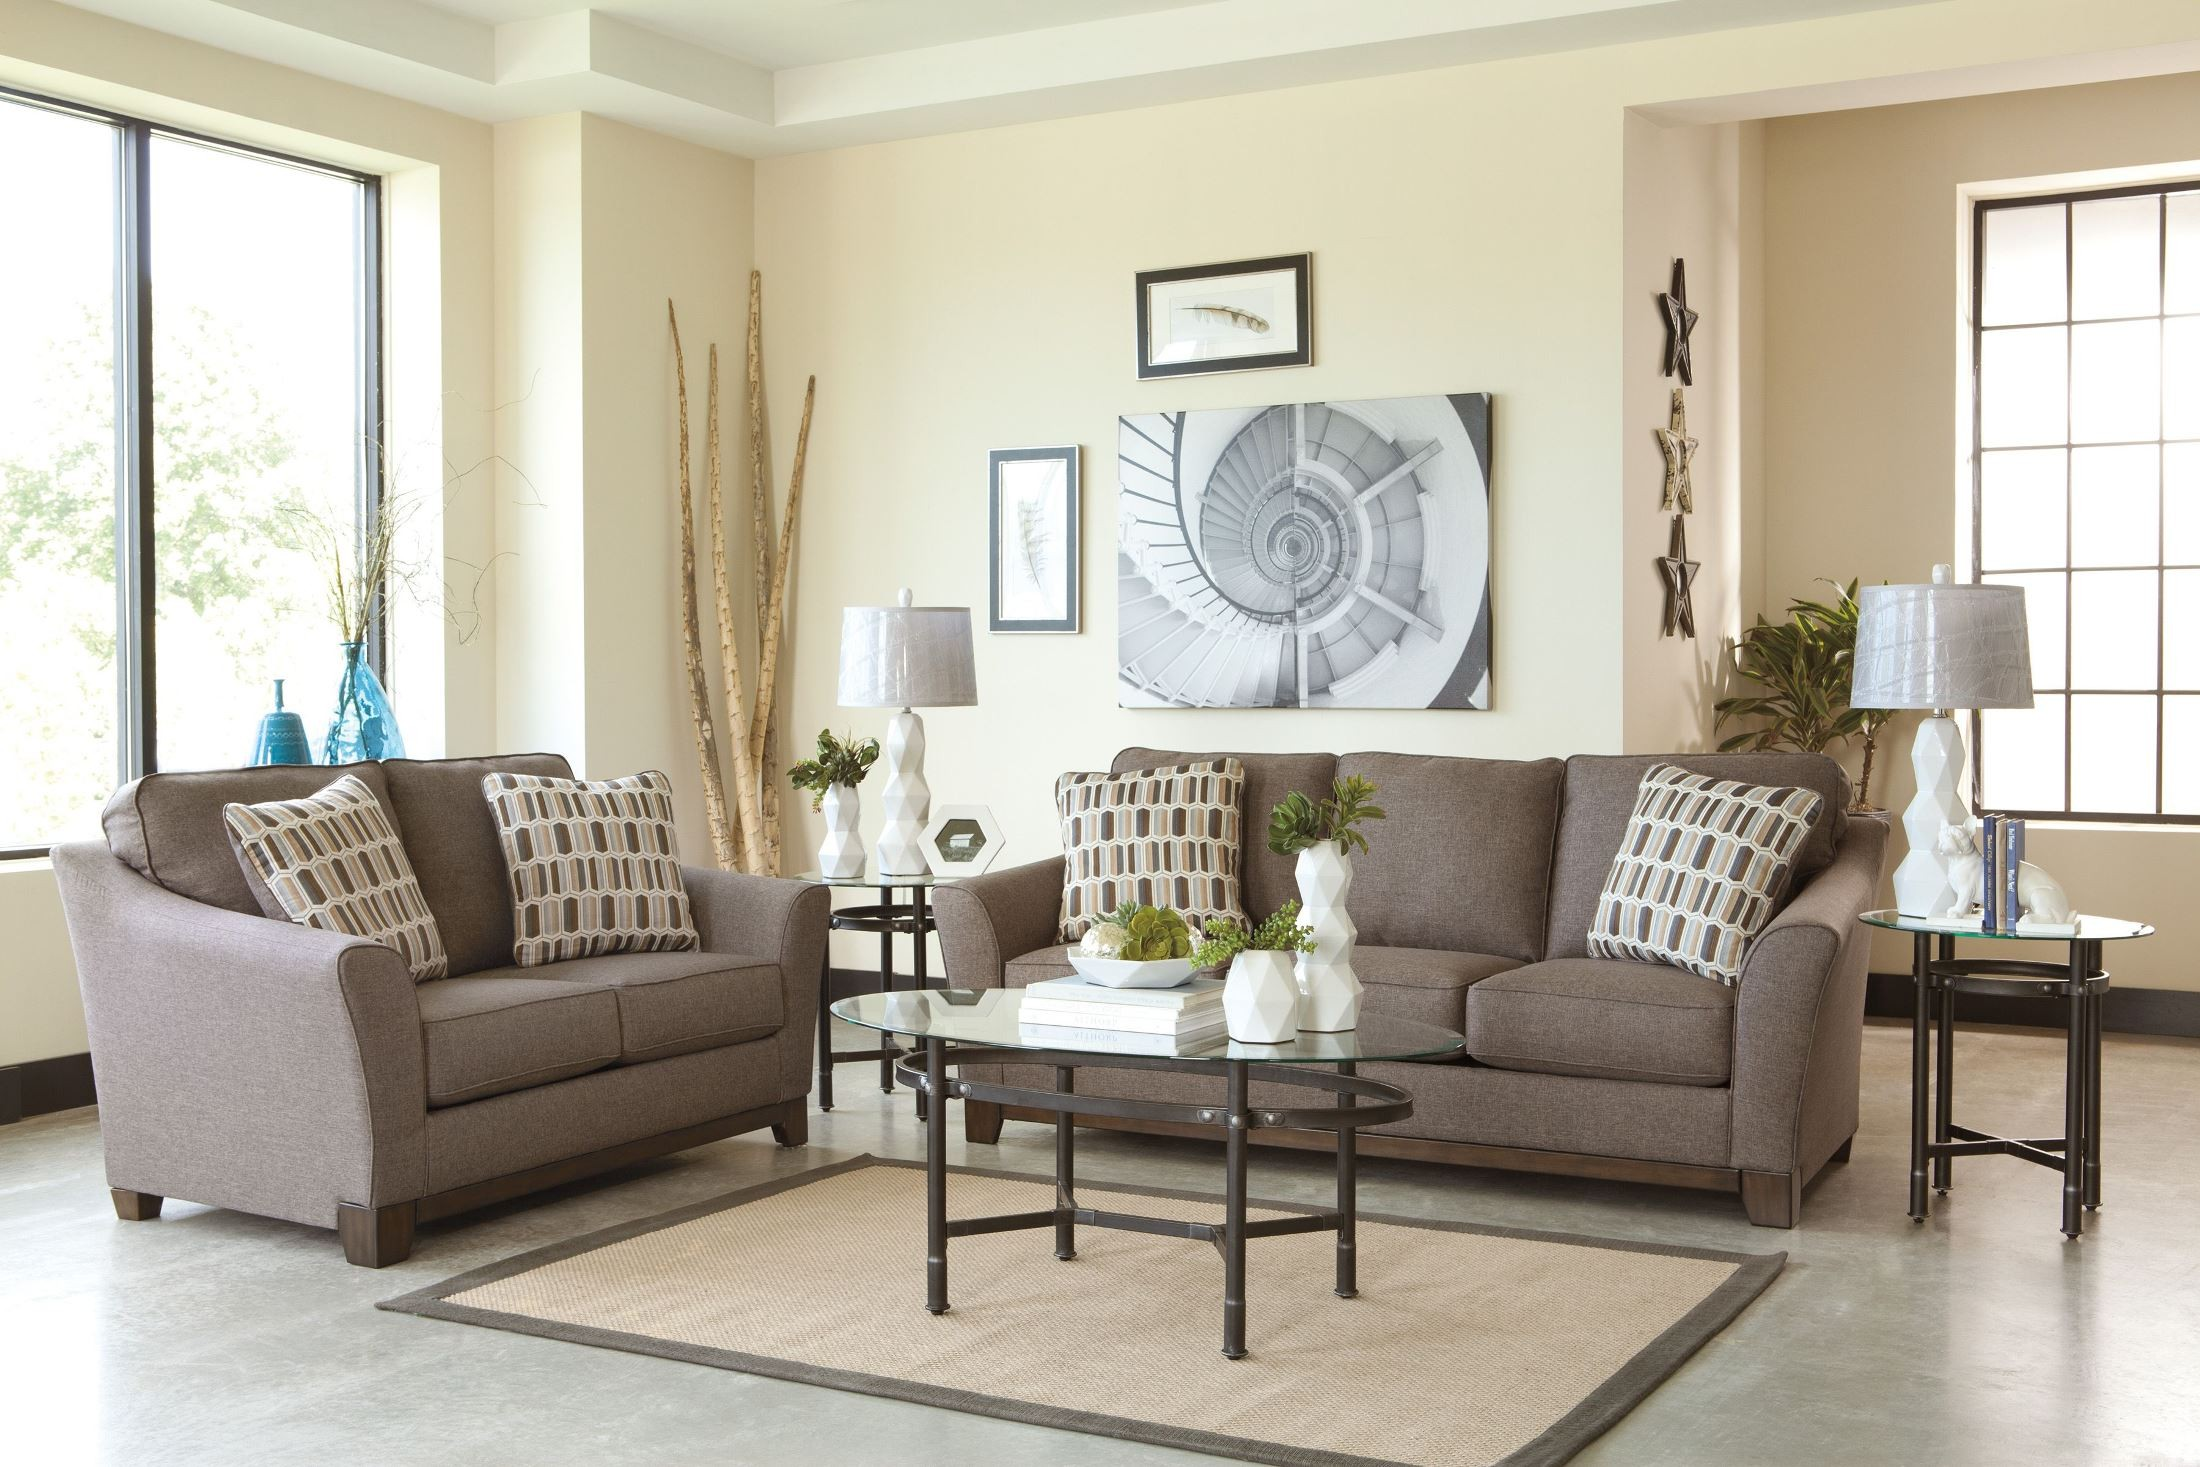 Janley slate sofa from ashley 4380438 coleman furniture for Living room june jordan